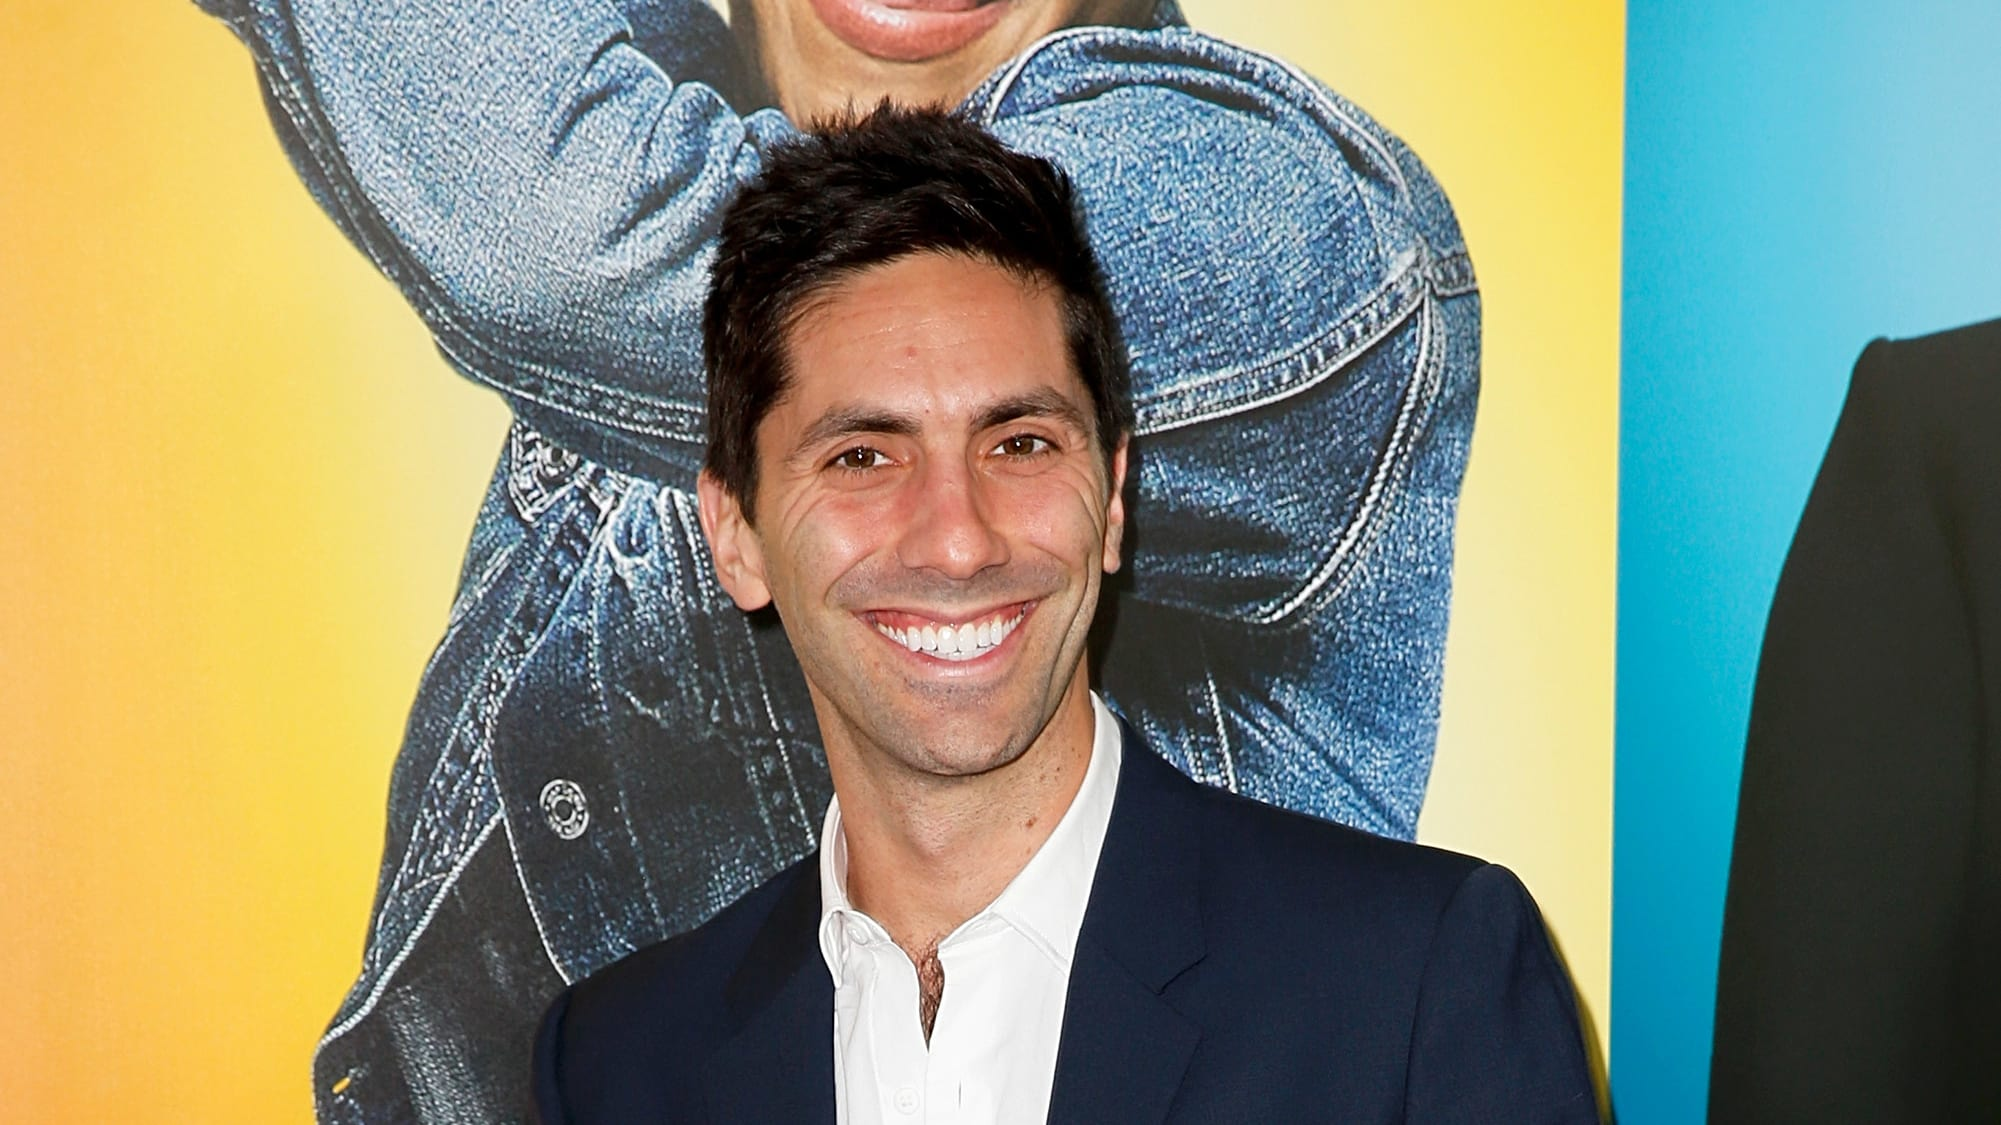 NEW YORK, NY - OCTOBER 28: Nev Schulman attends 'Nobody's Fool' New York Premiere at AMC Lincoln Square Theater on October 28, 2018 in New York City.  (Photo by Dominik Bindl/Getty Images)